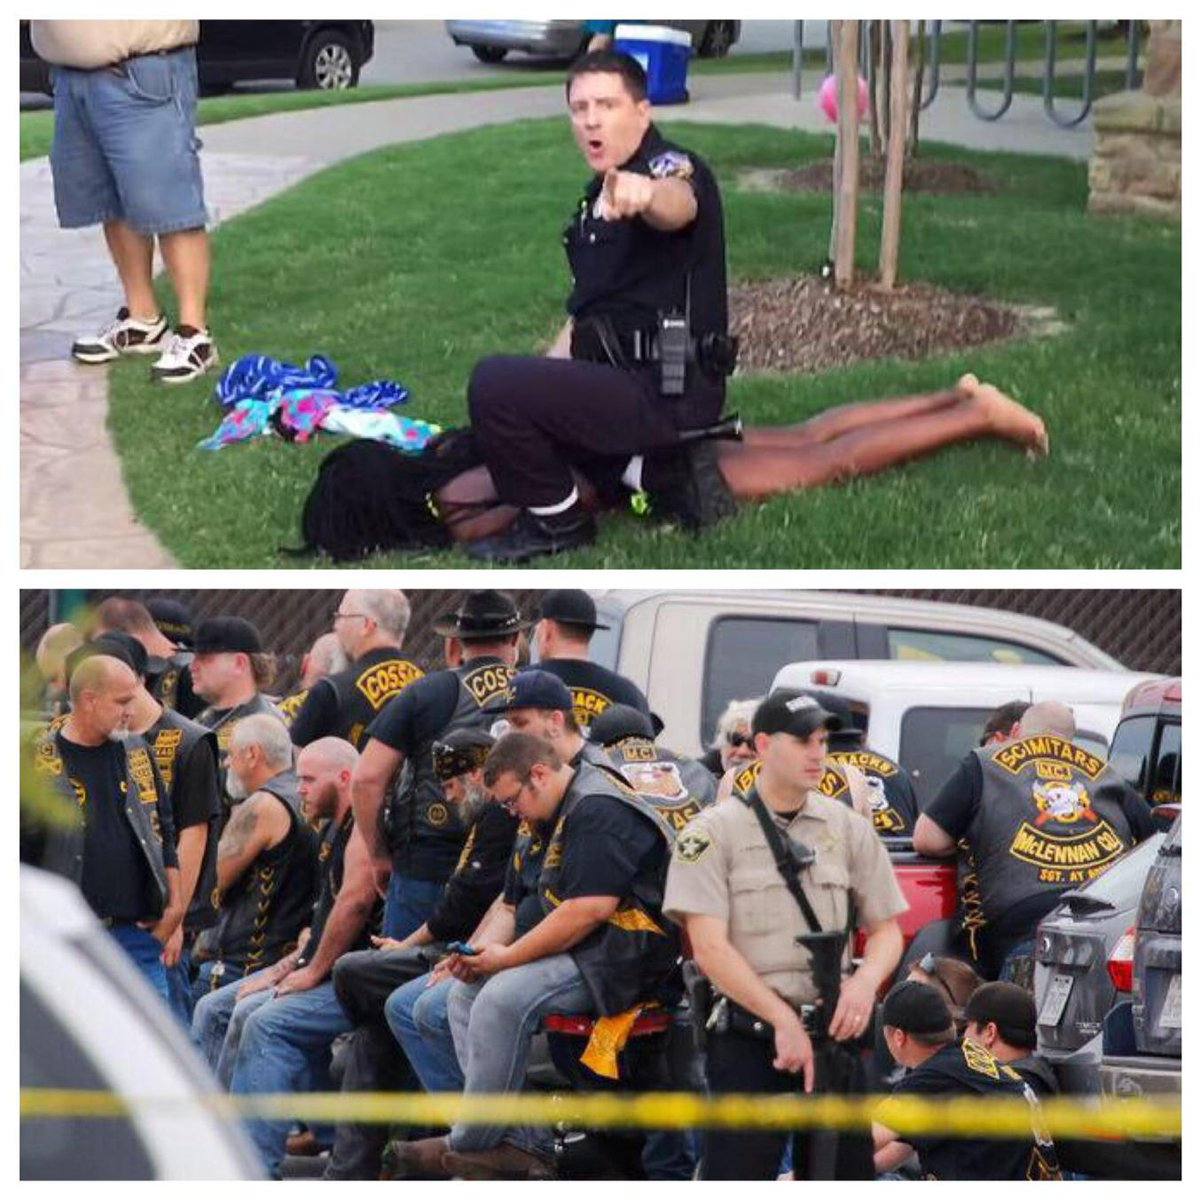 In what world are both of these accepted? Ours. #McKinney http://t.co/kXAQ5jVoPt